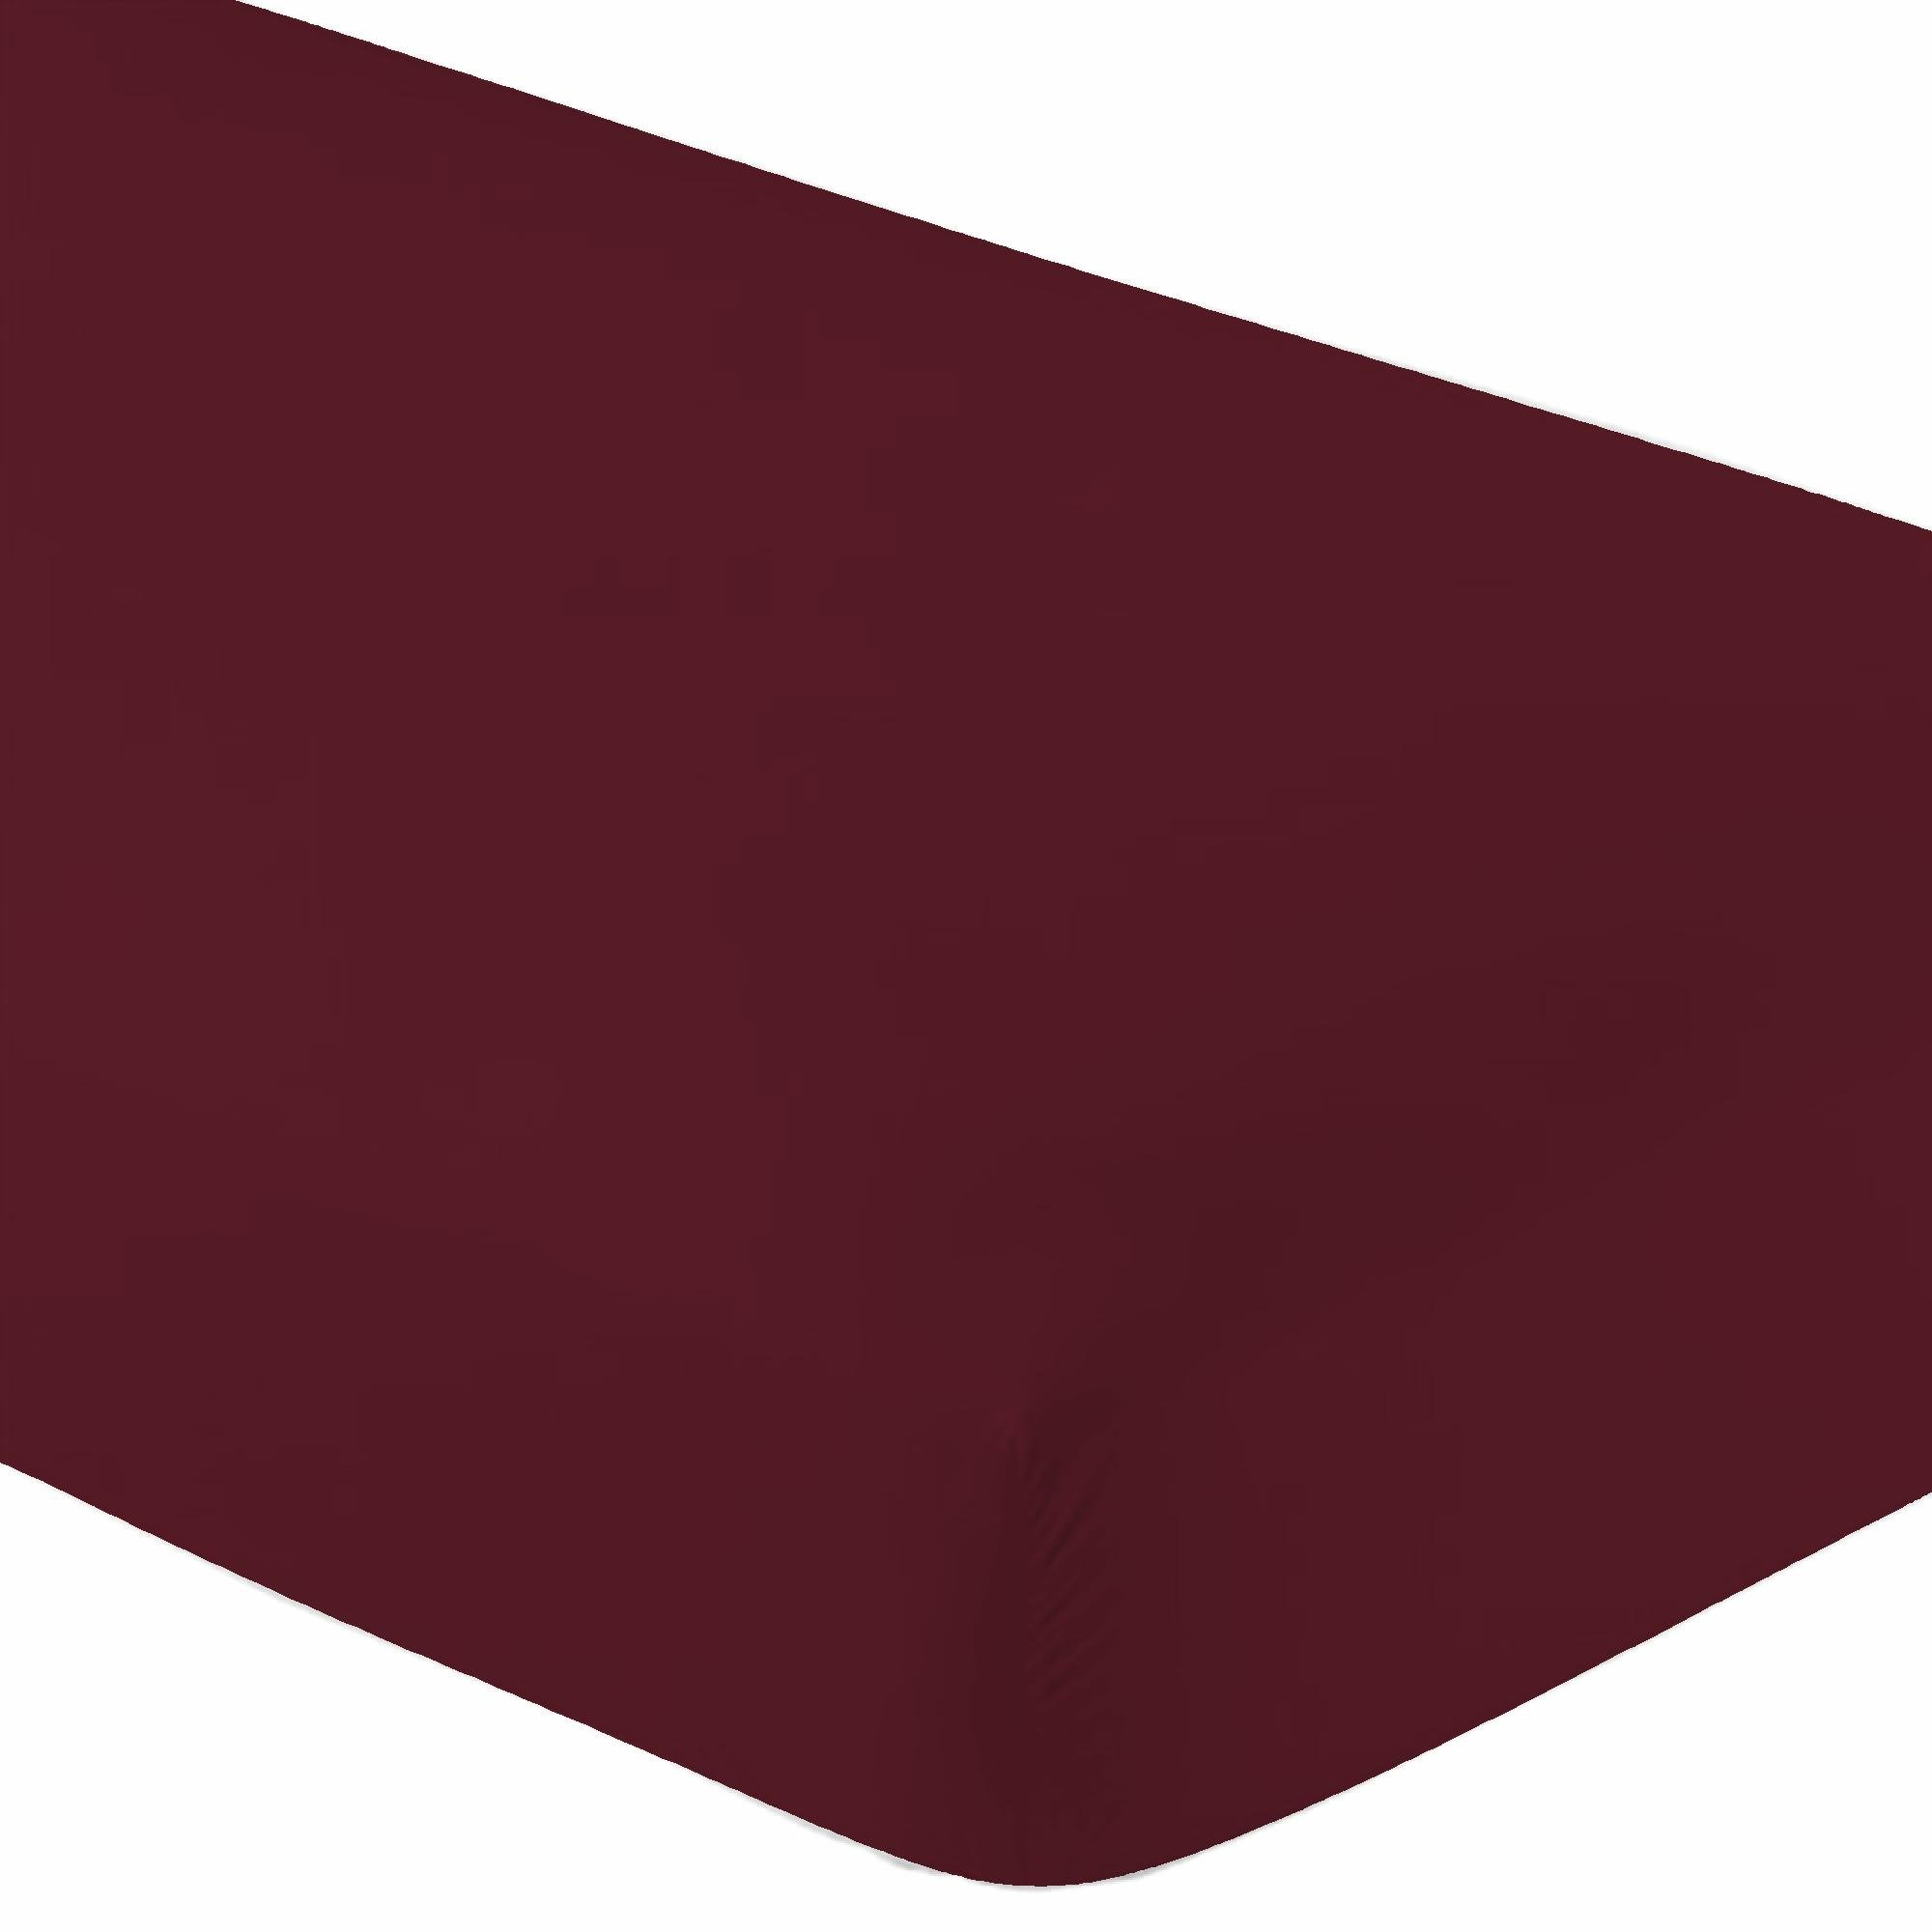 Crescent Bedding Twin Burgundy Fitted Sheet Only - Soft & Comfy 100% Cotton (Twin, Burgundy) by Crescent Bedding